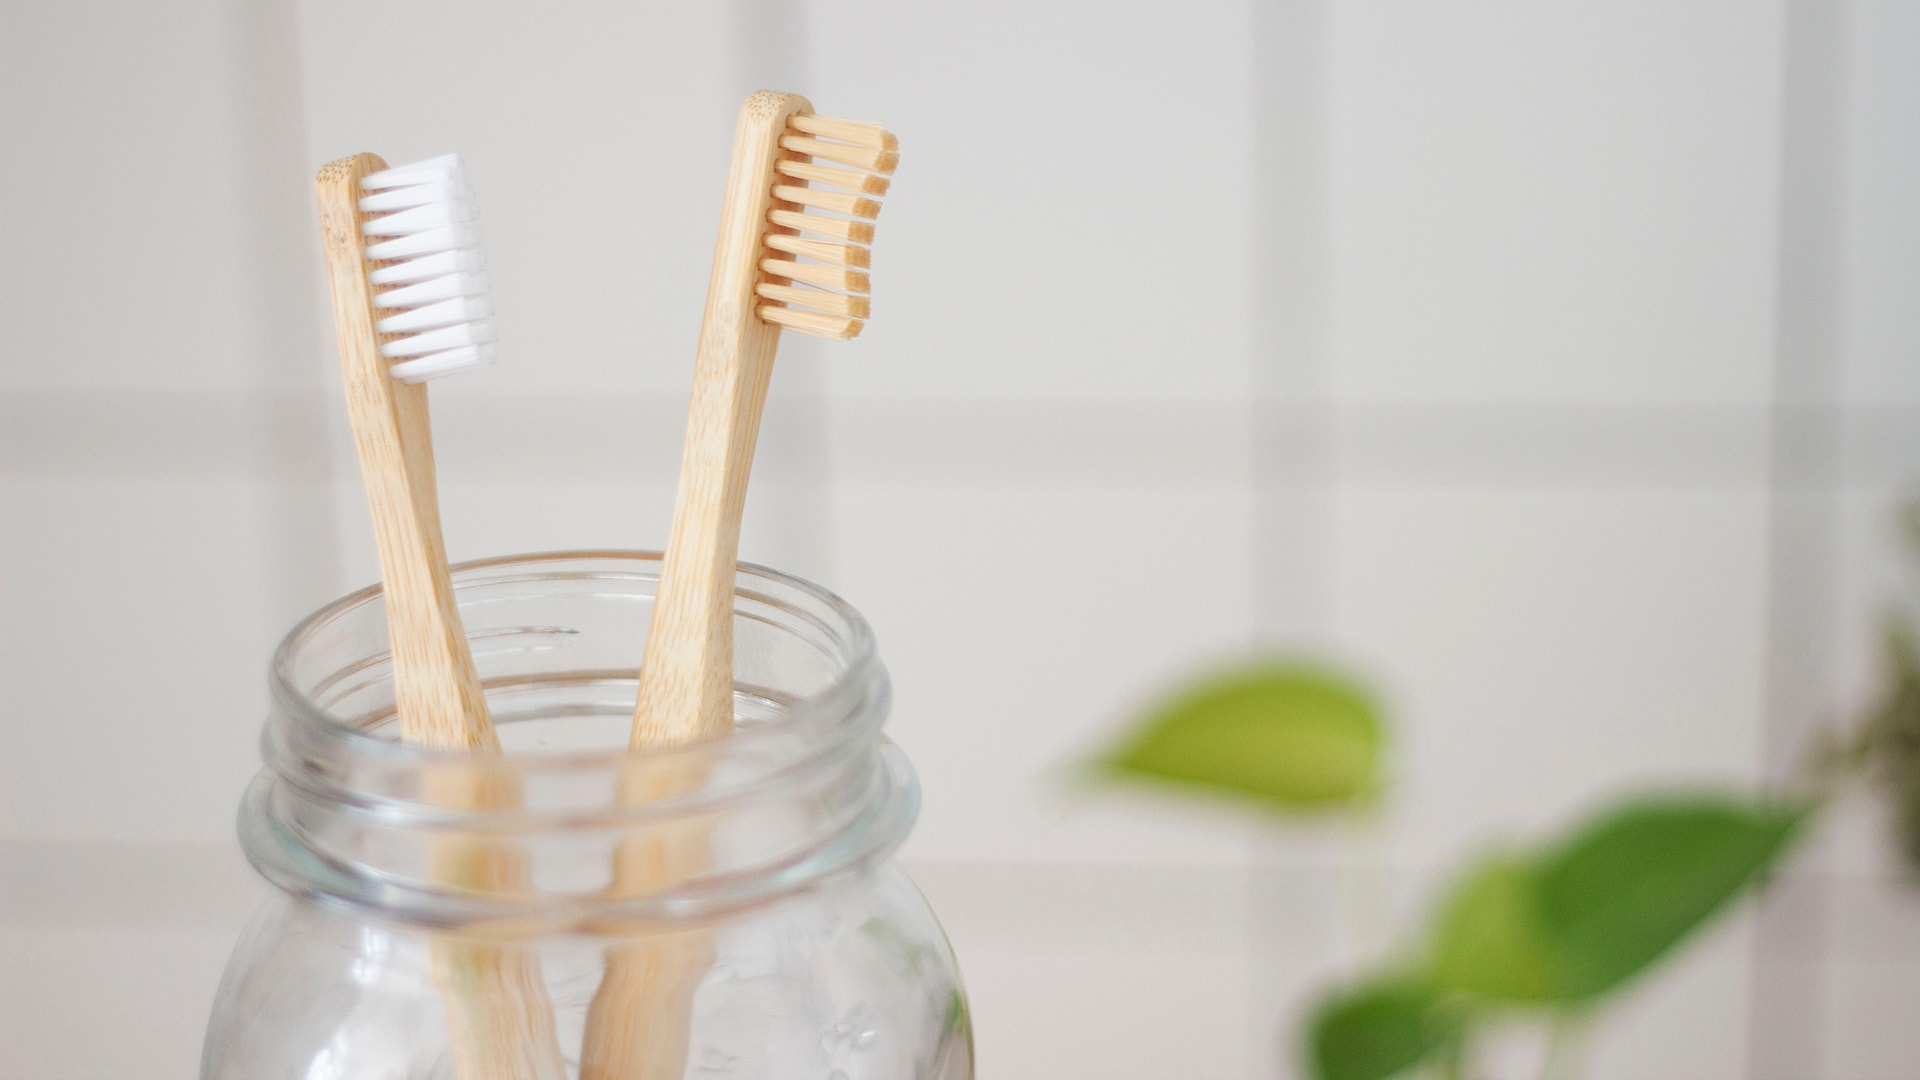 two toothbrushes - Stanley Dentistry in Cary, NC